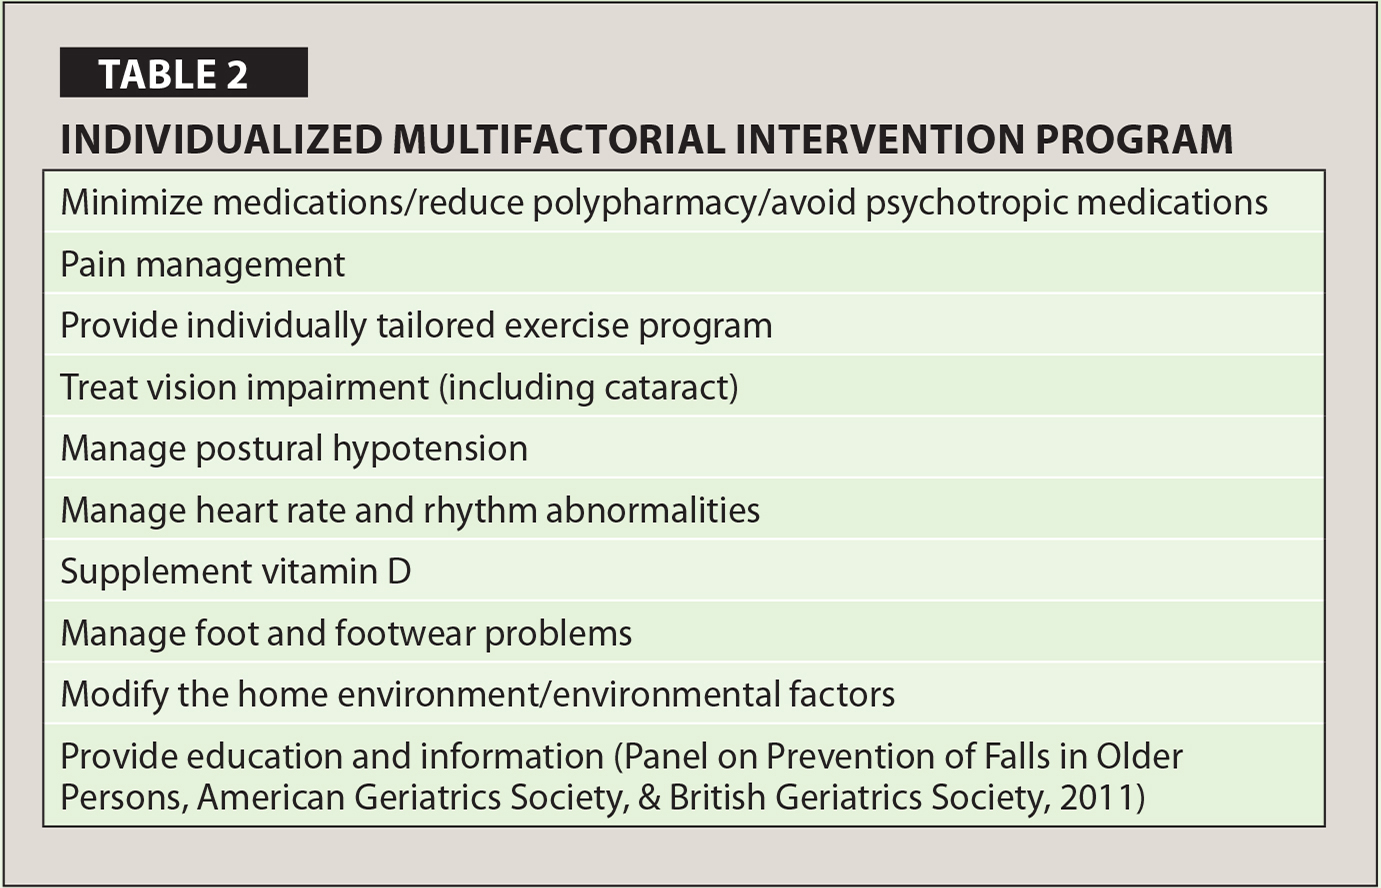 Individualized Multifactorial Intervention Program